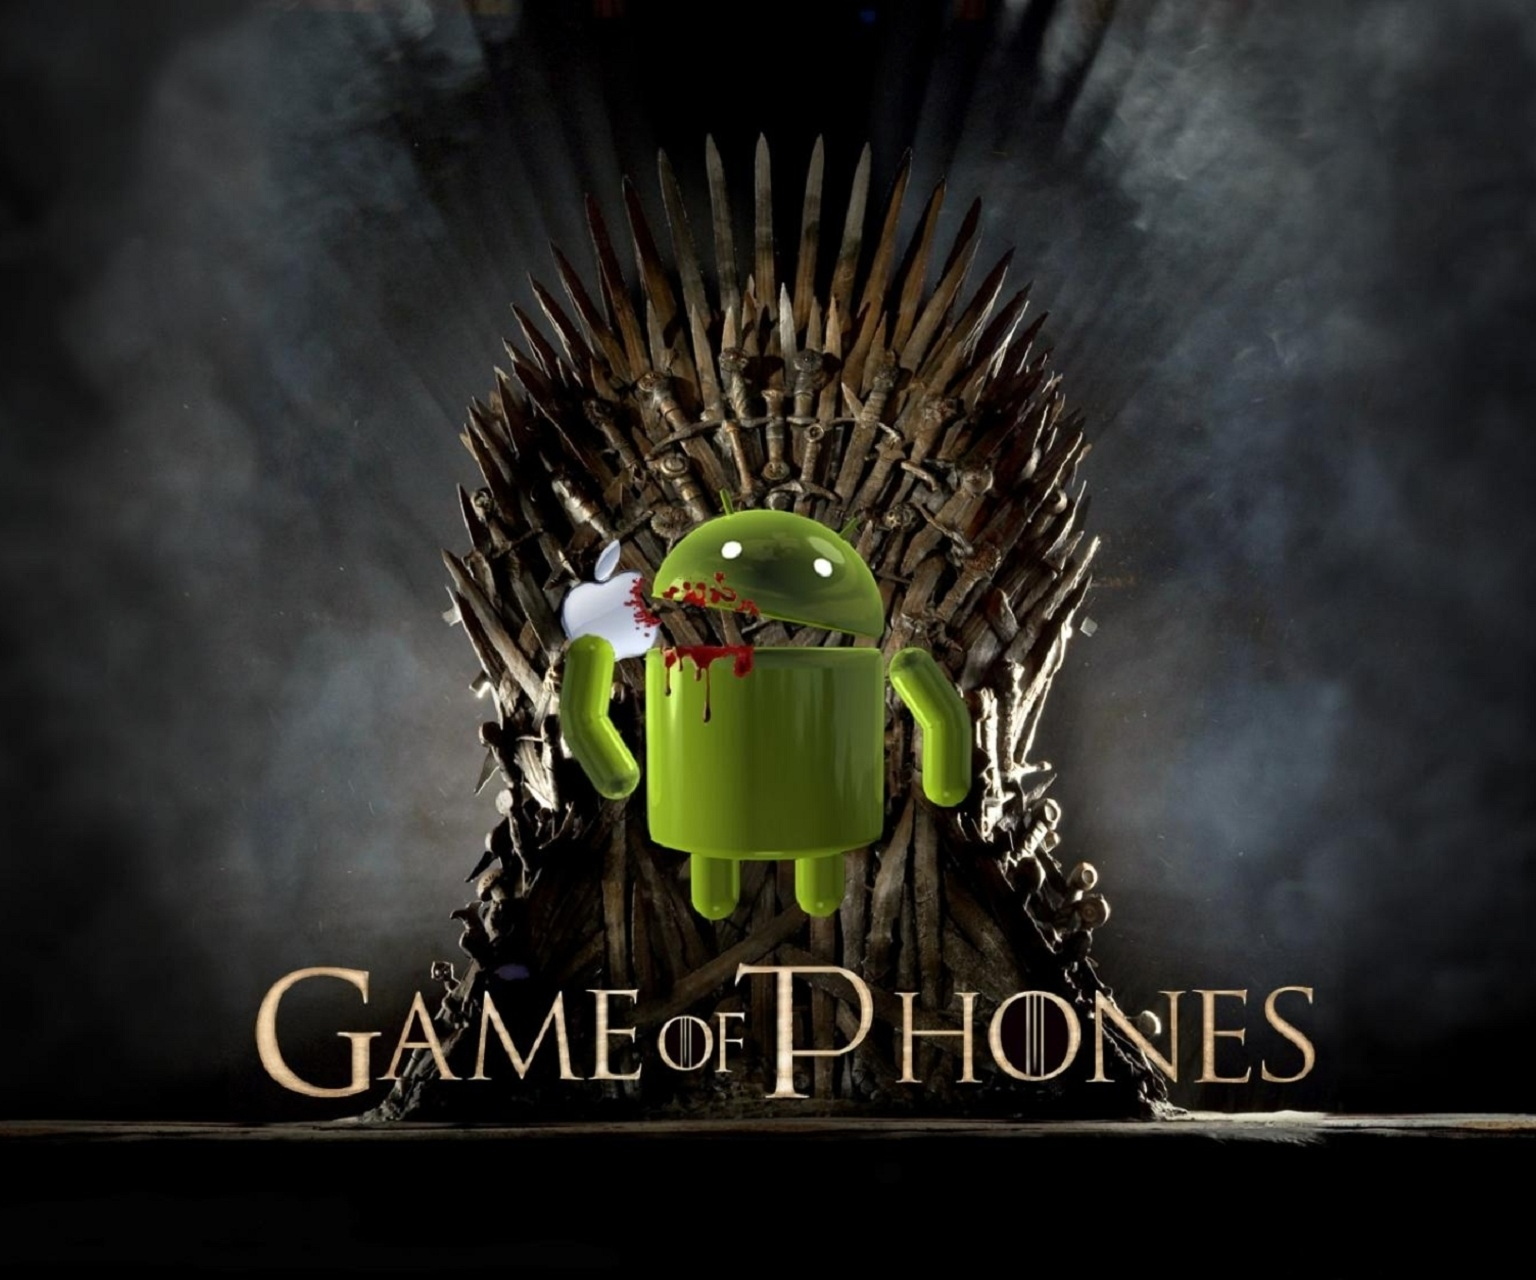 Game of Thrones Phone Wallpaper 1536x1280